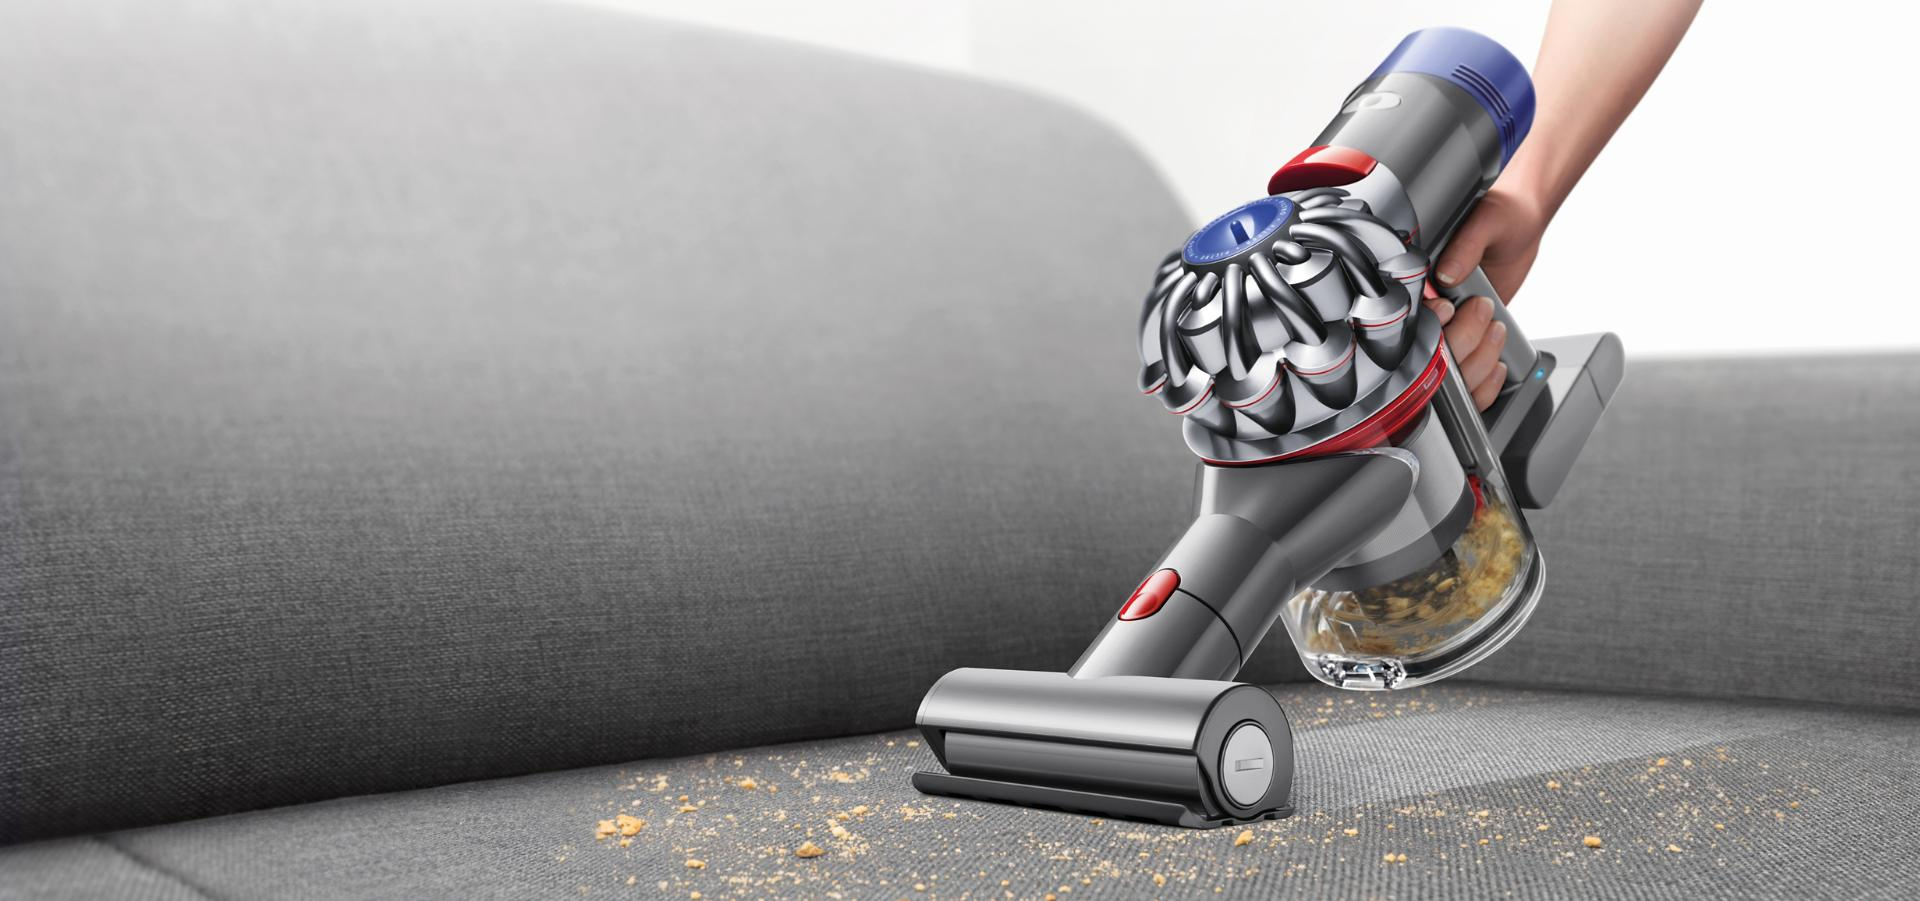 The Dyson V7 Trigger handheld vacuum cleaner being used to clean sofa